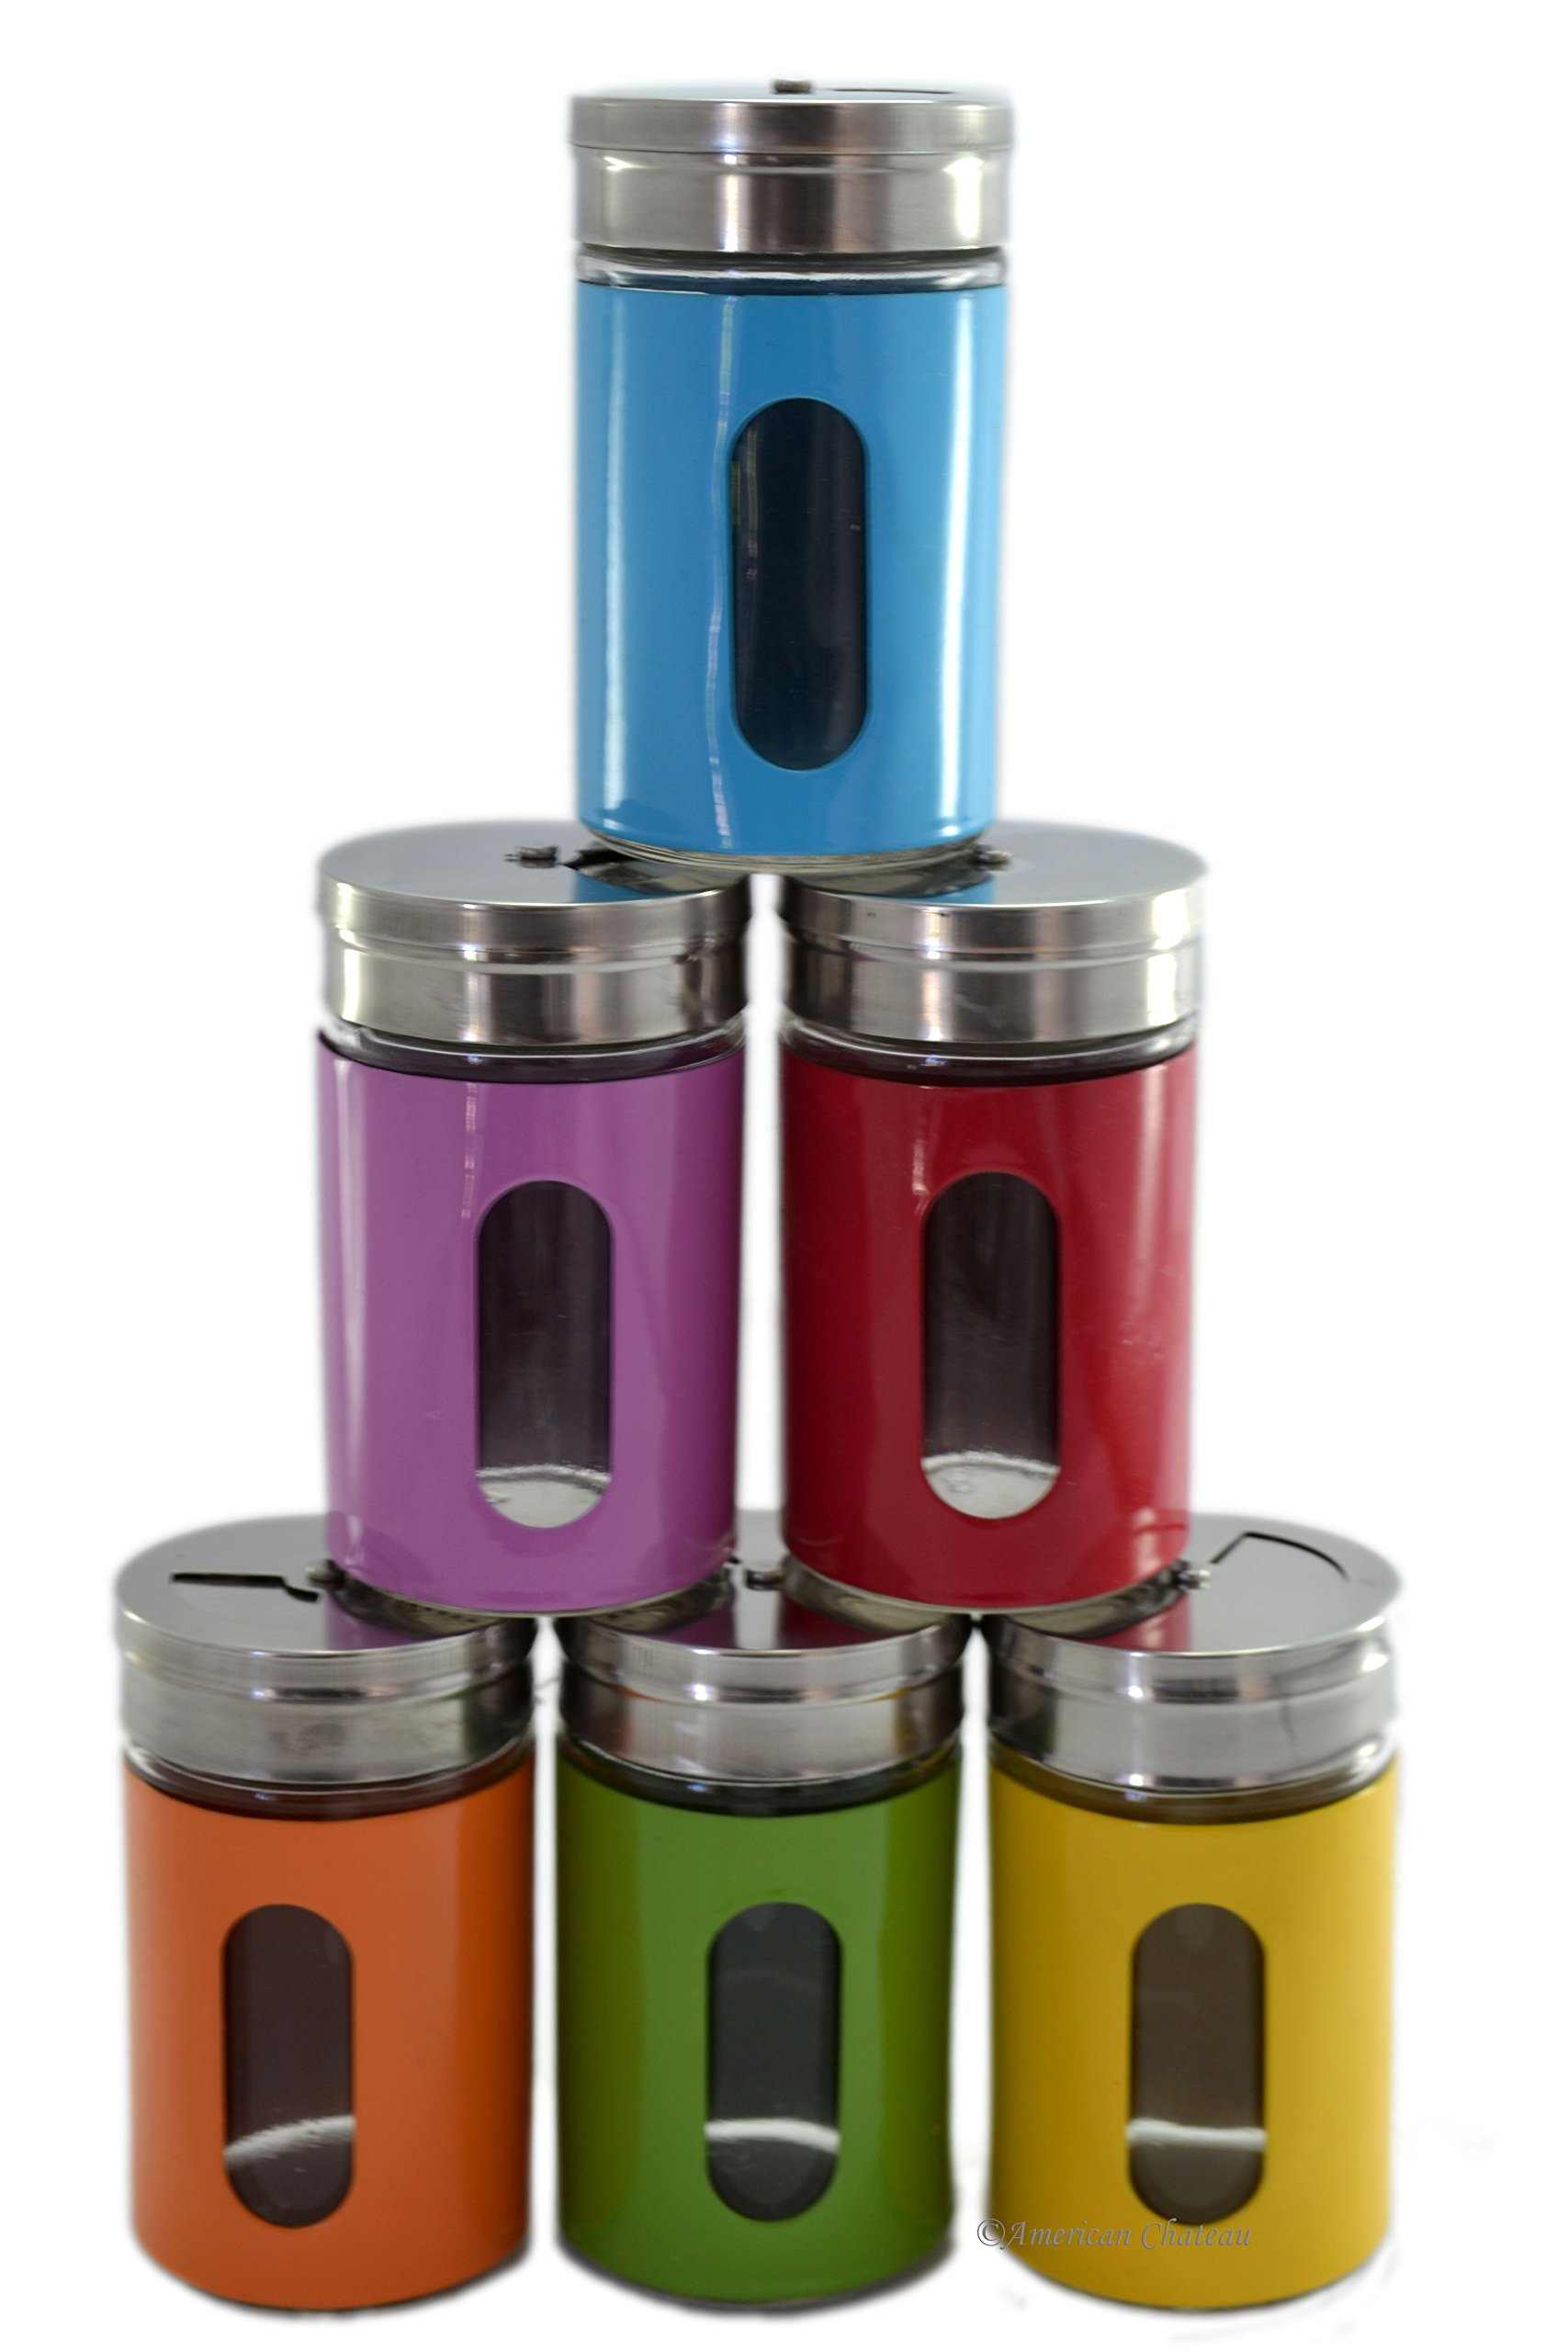 Retro Set 6 Glass & Colorful Metal Spice Bottles Food Jar Stainless Steel Tops